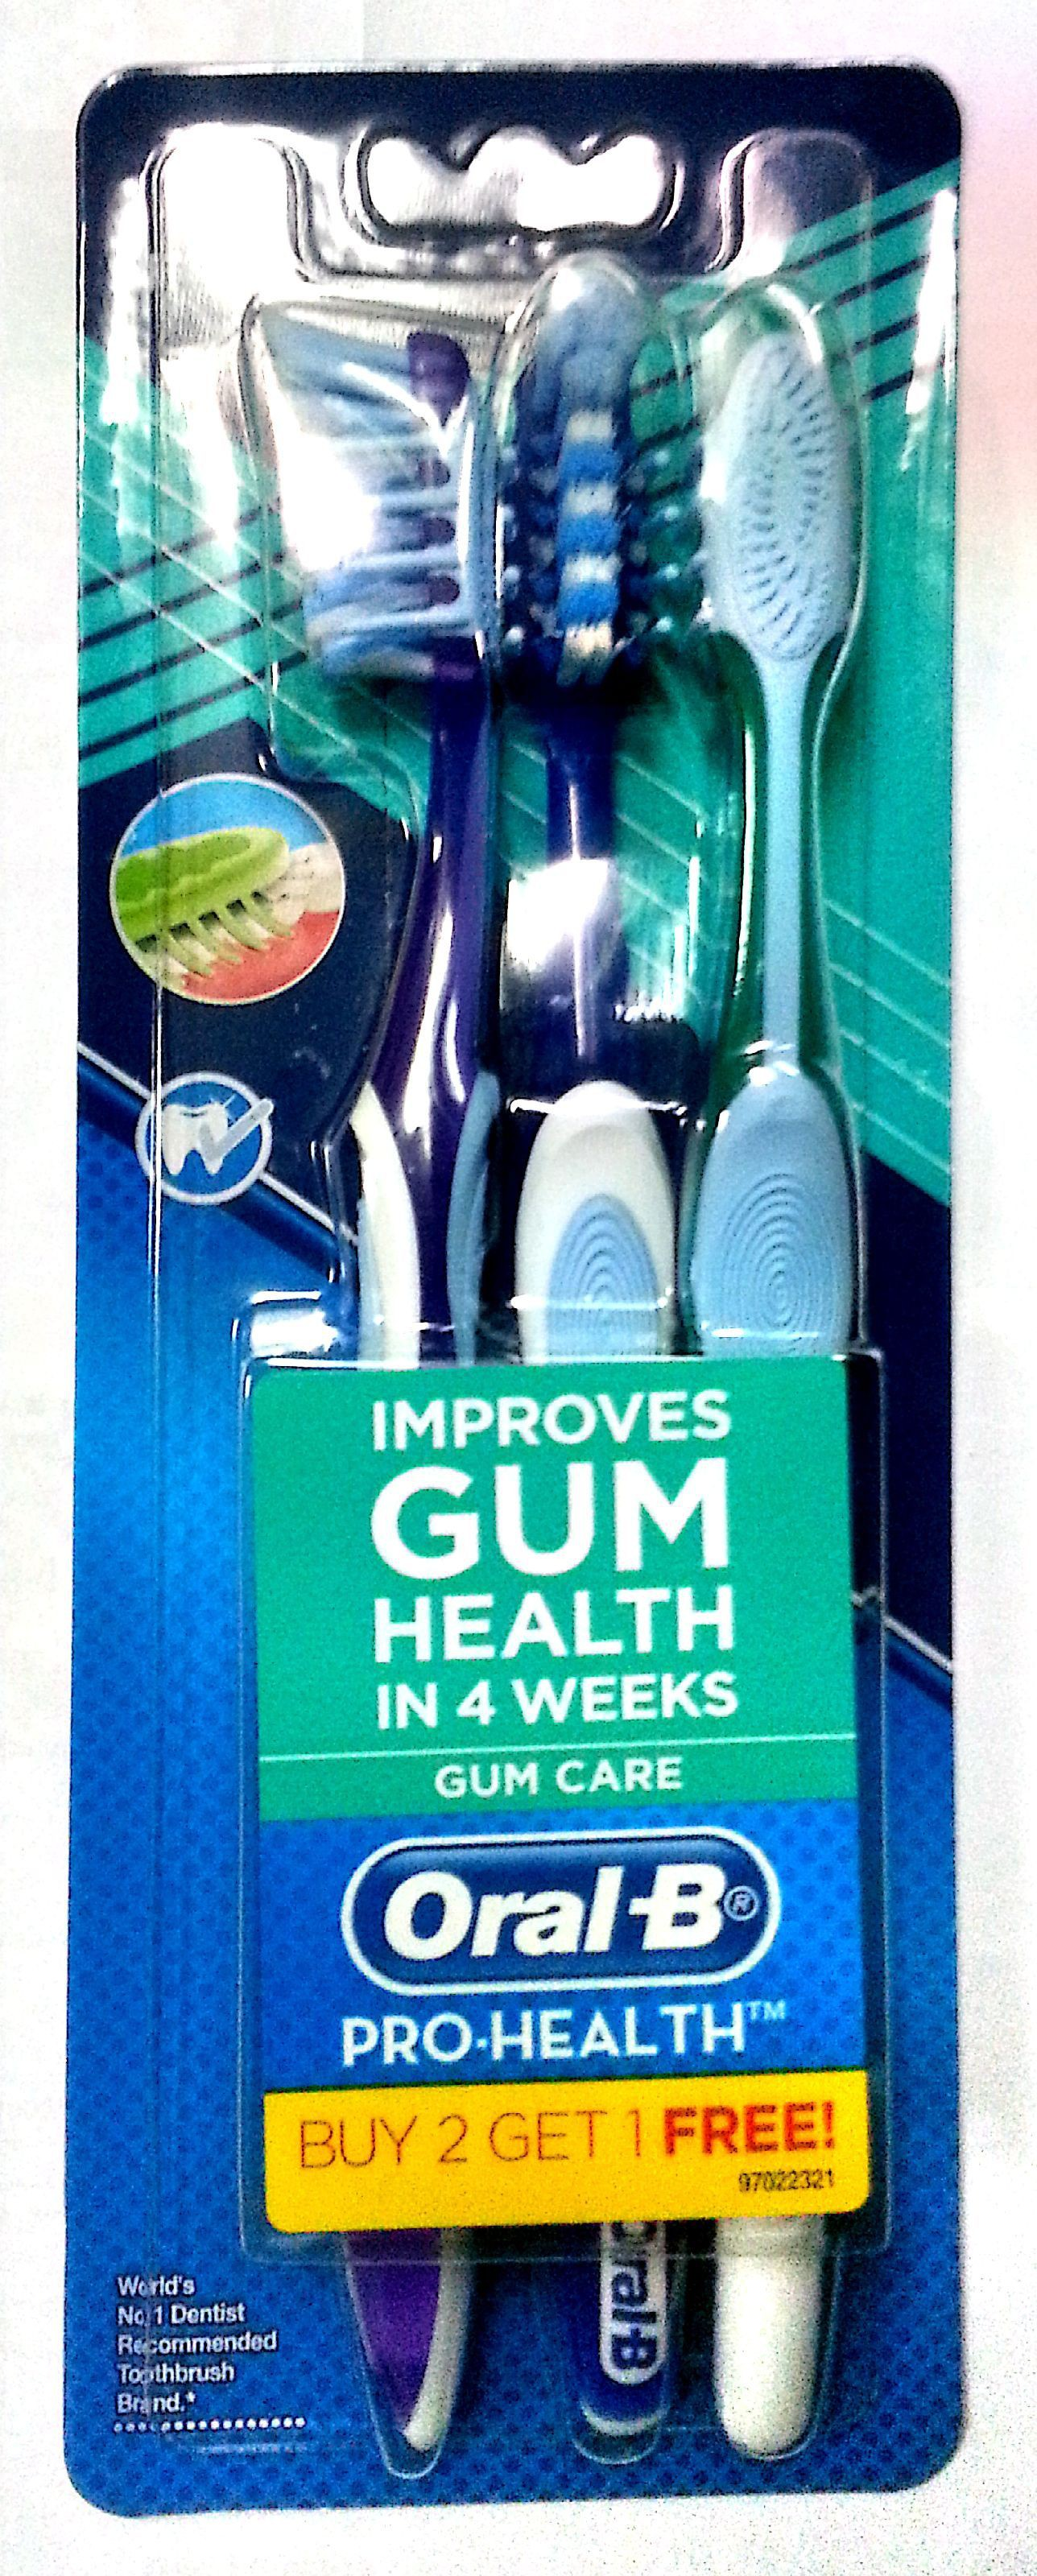 Oral-B Prohealth Gum Tooth Brush(Blue, Green, Red, Pink)